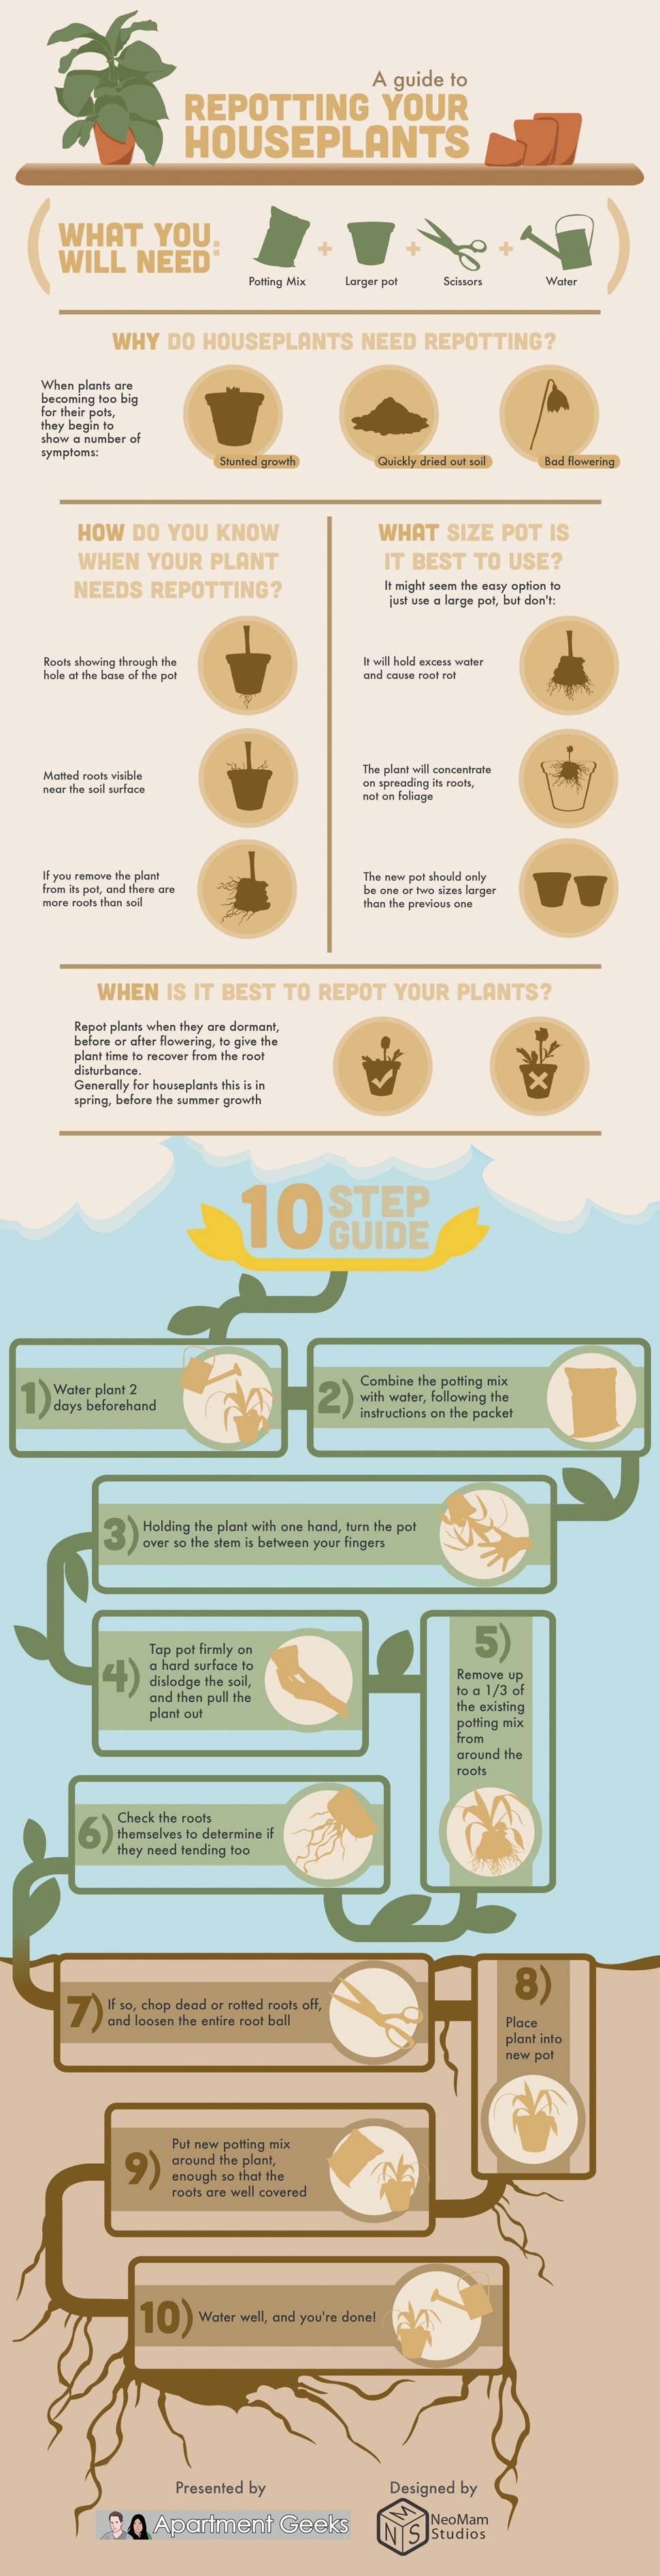 A 10 Step Guide to Repot Plants in your House Infographic